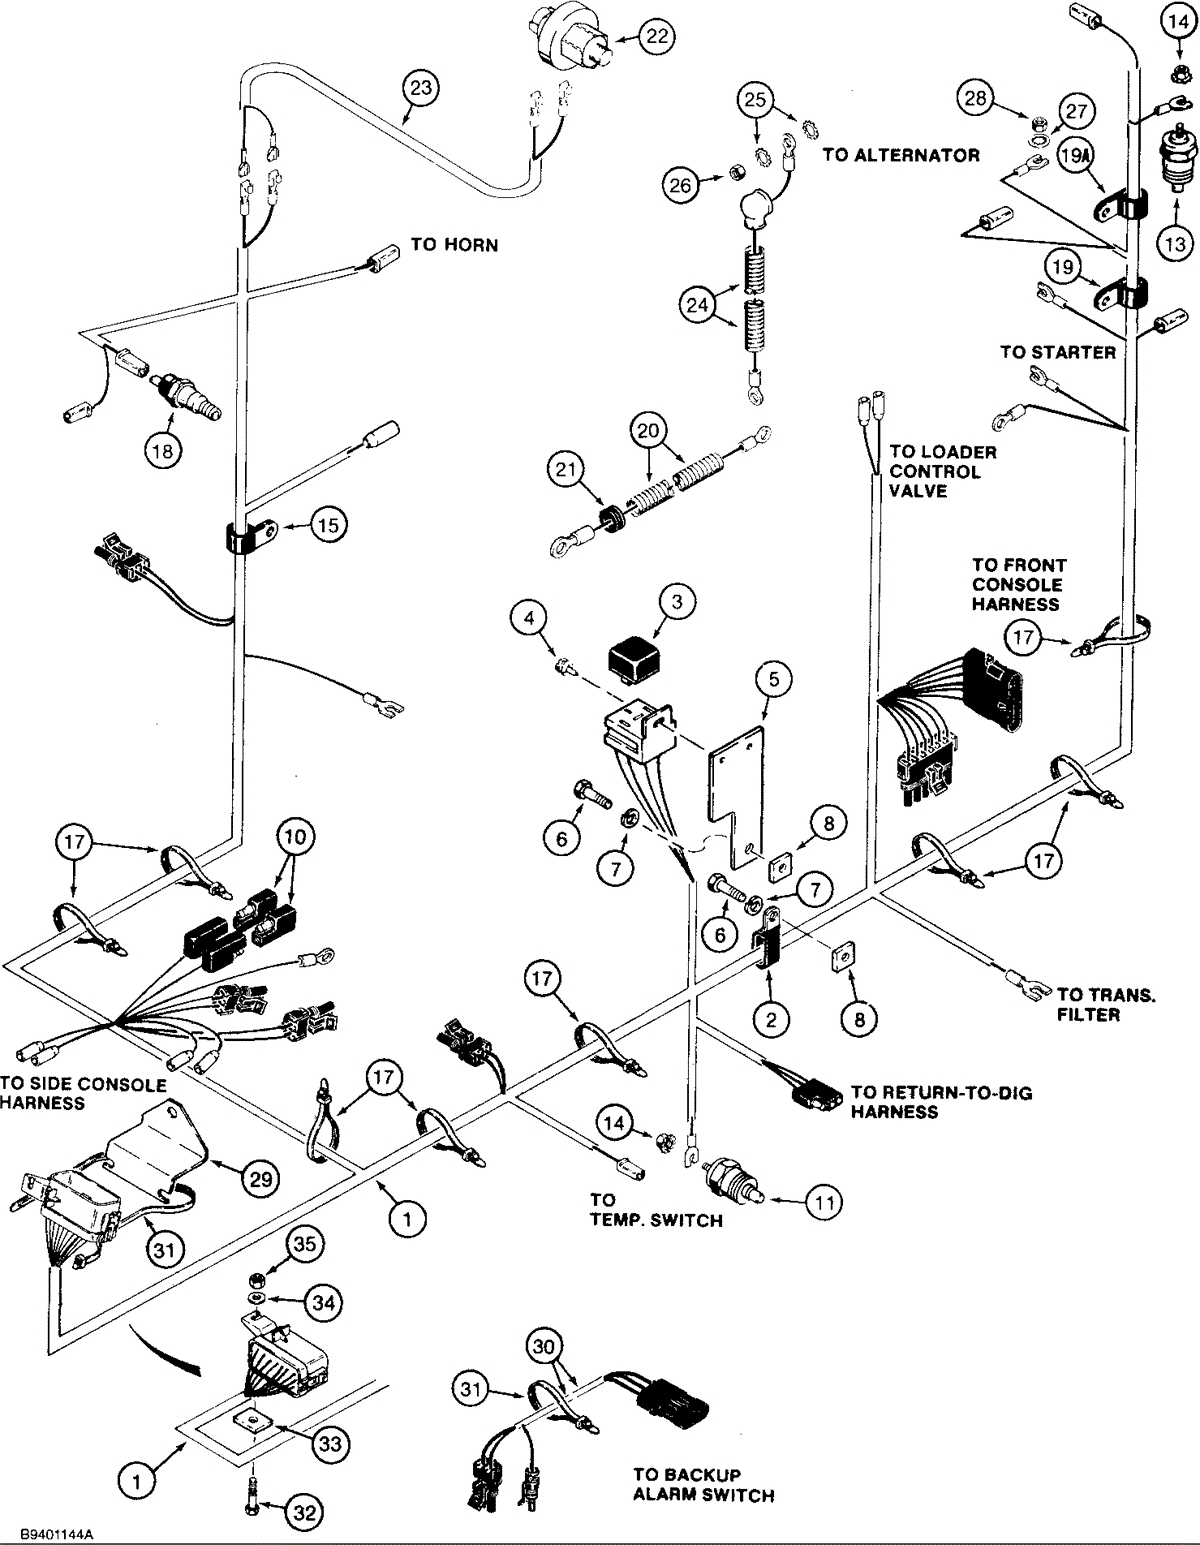 Wiring Schematic For